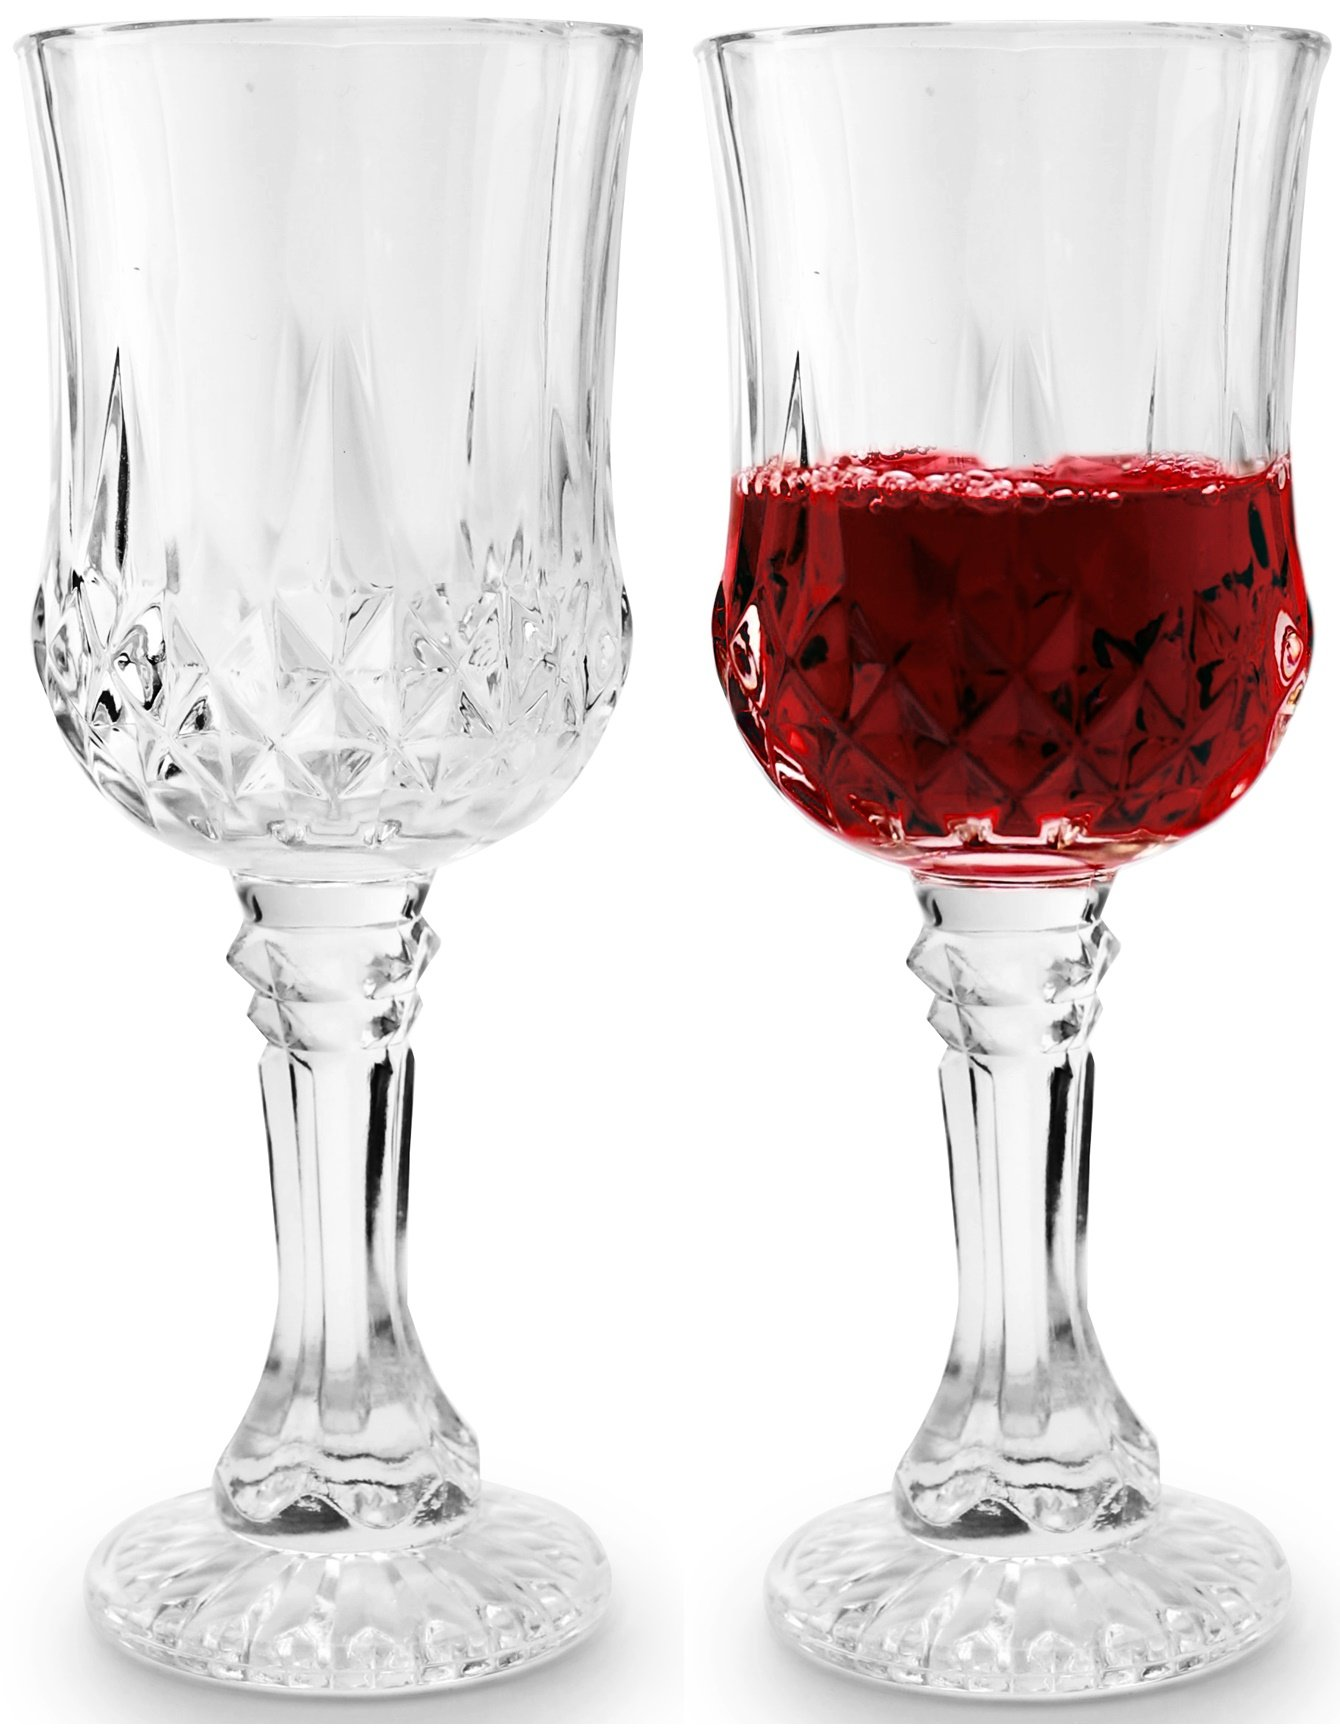 Circleware 10134 Odyssey Glassware Products, Clear by Circleware